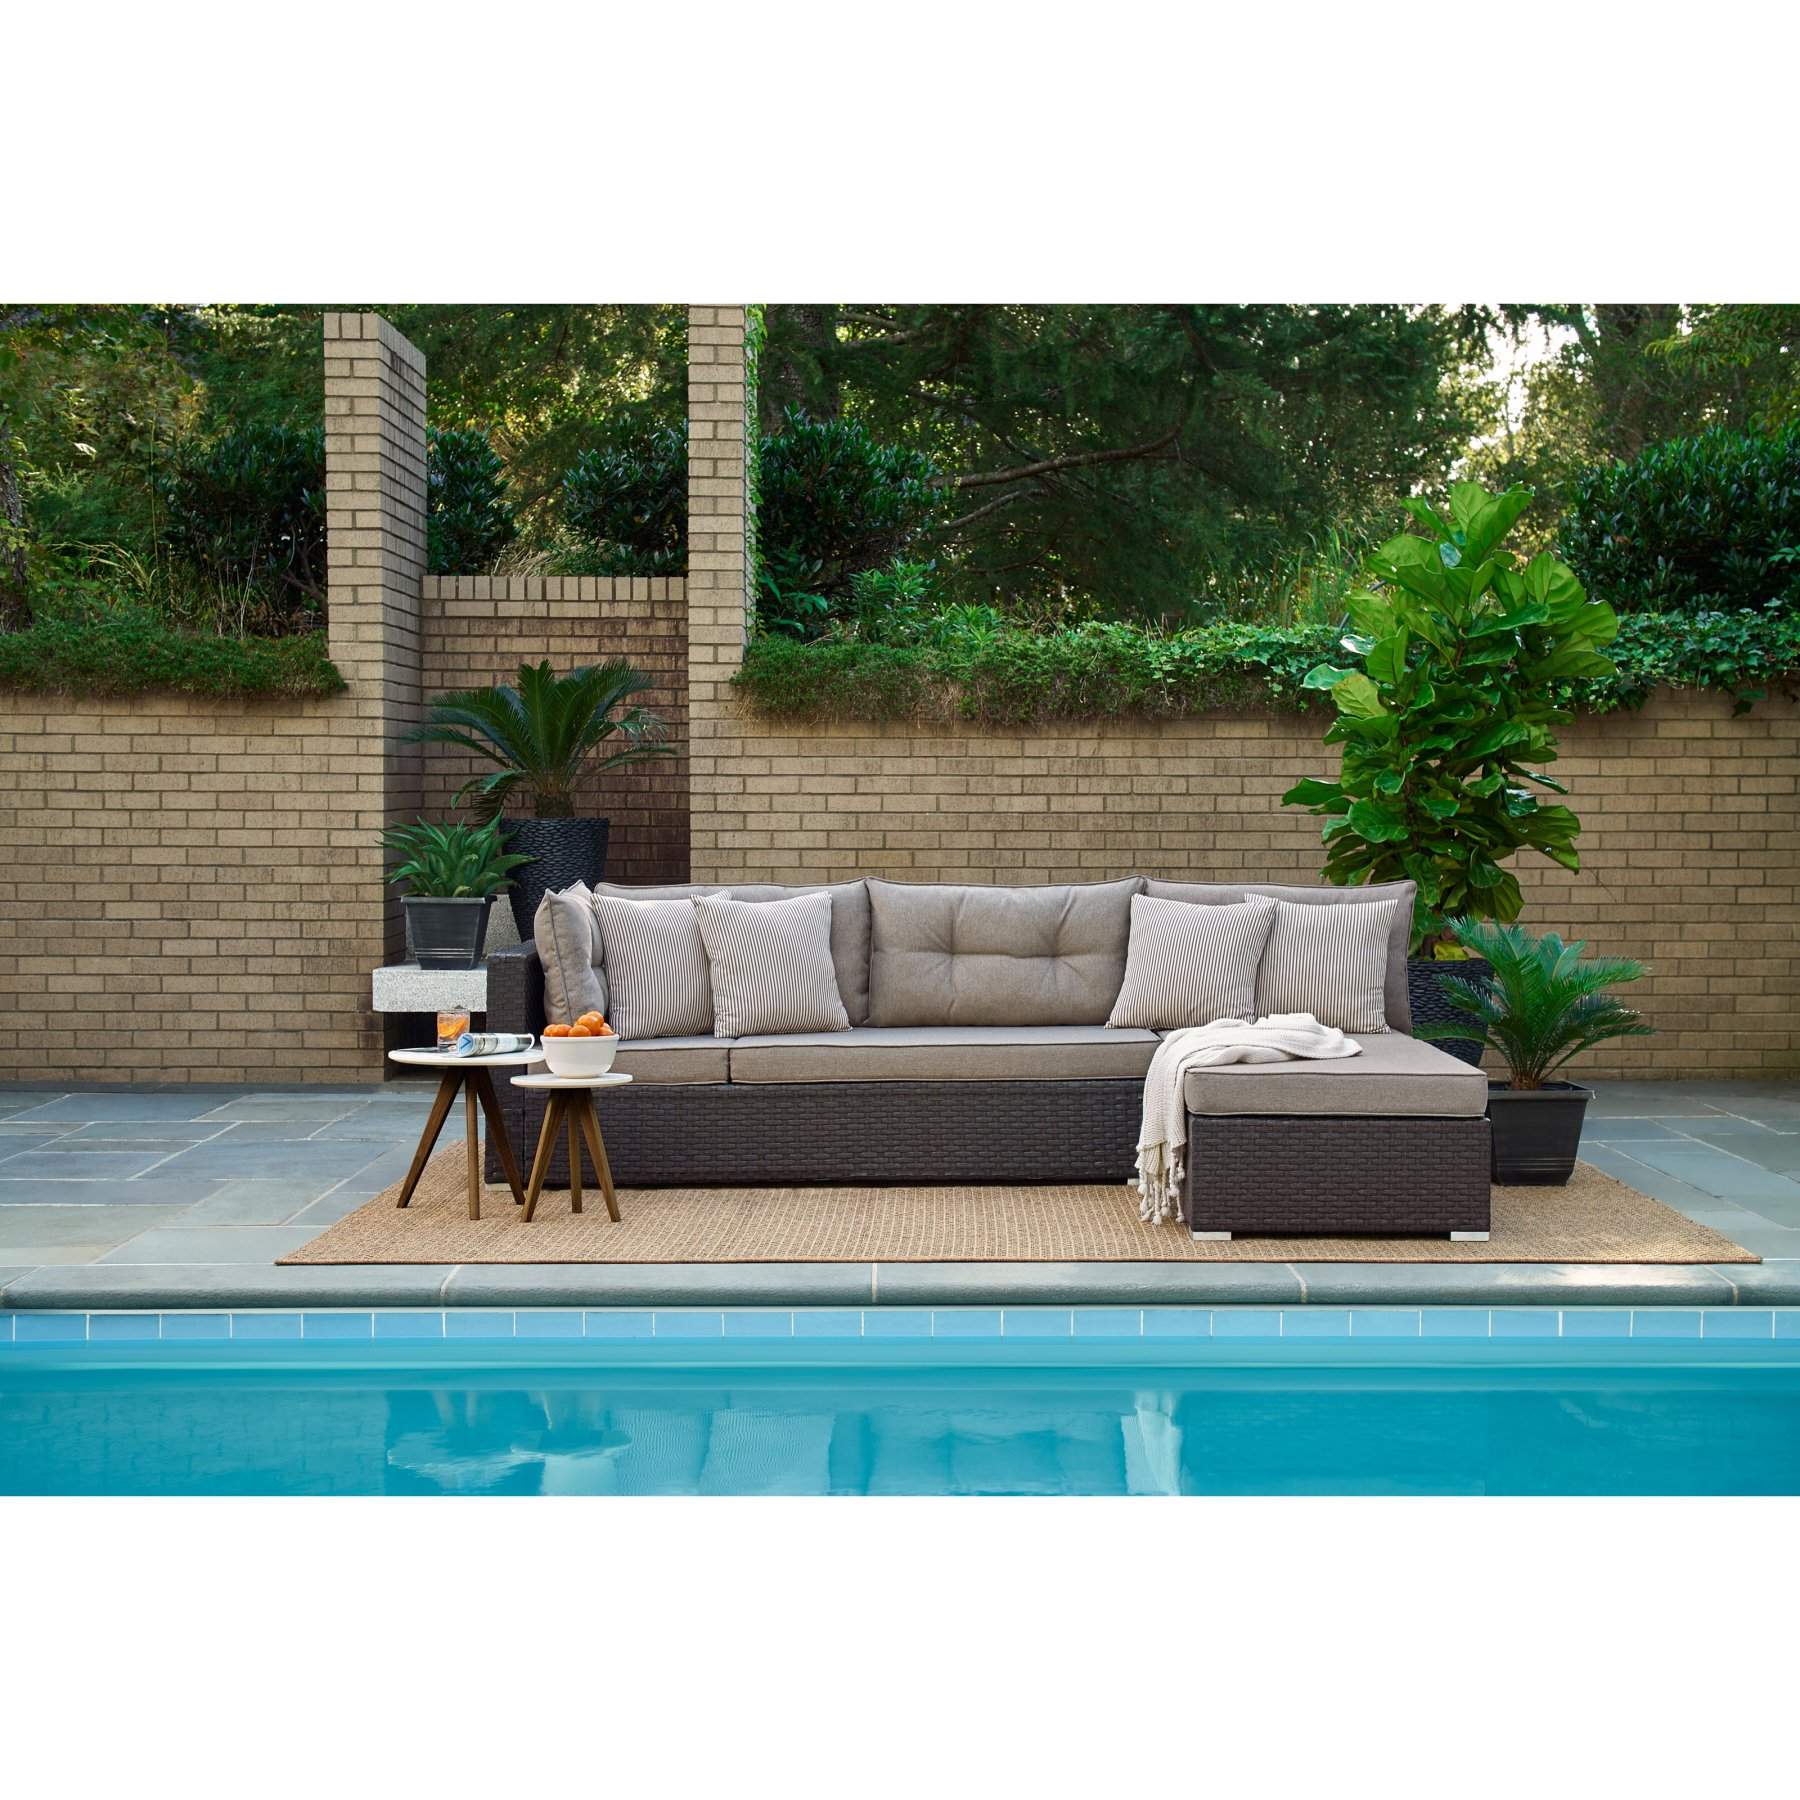 Outdoor Relax A Lounger Havana Resin Wicker 2 Piece Modular